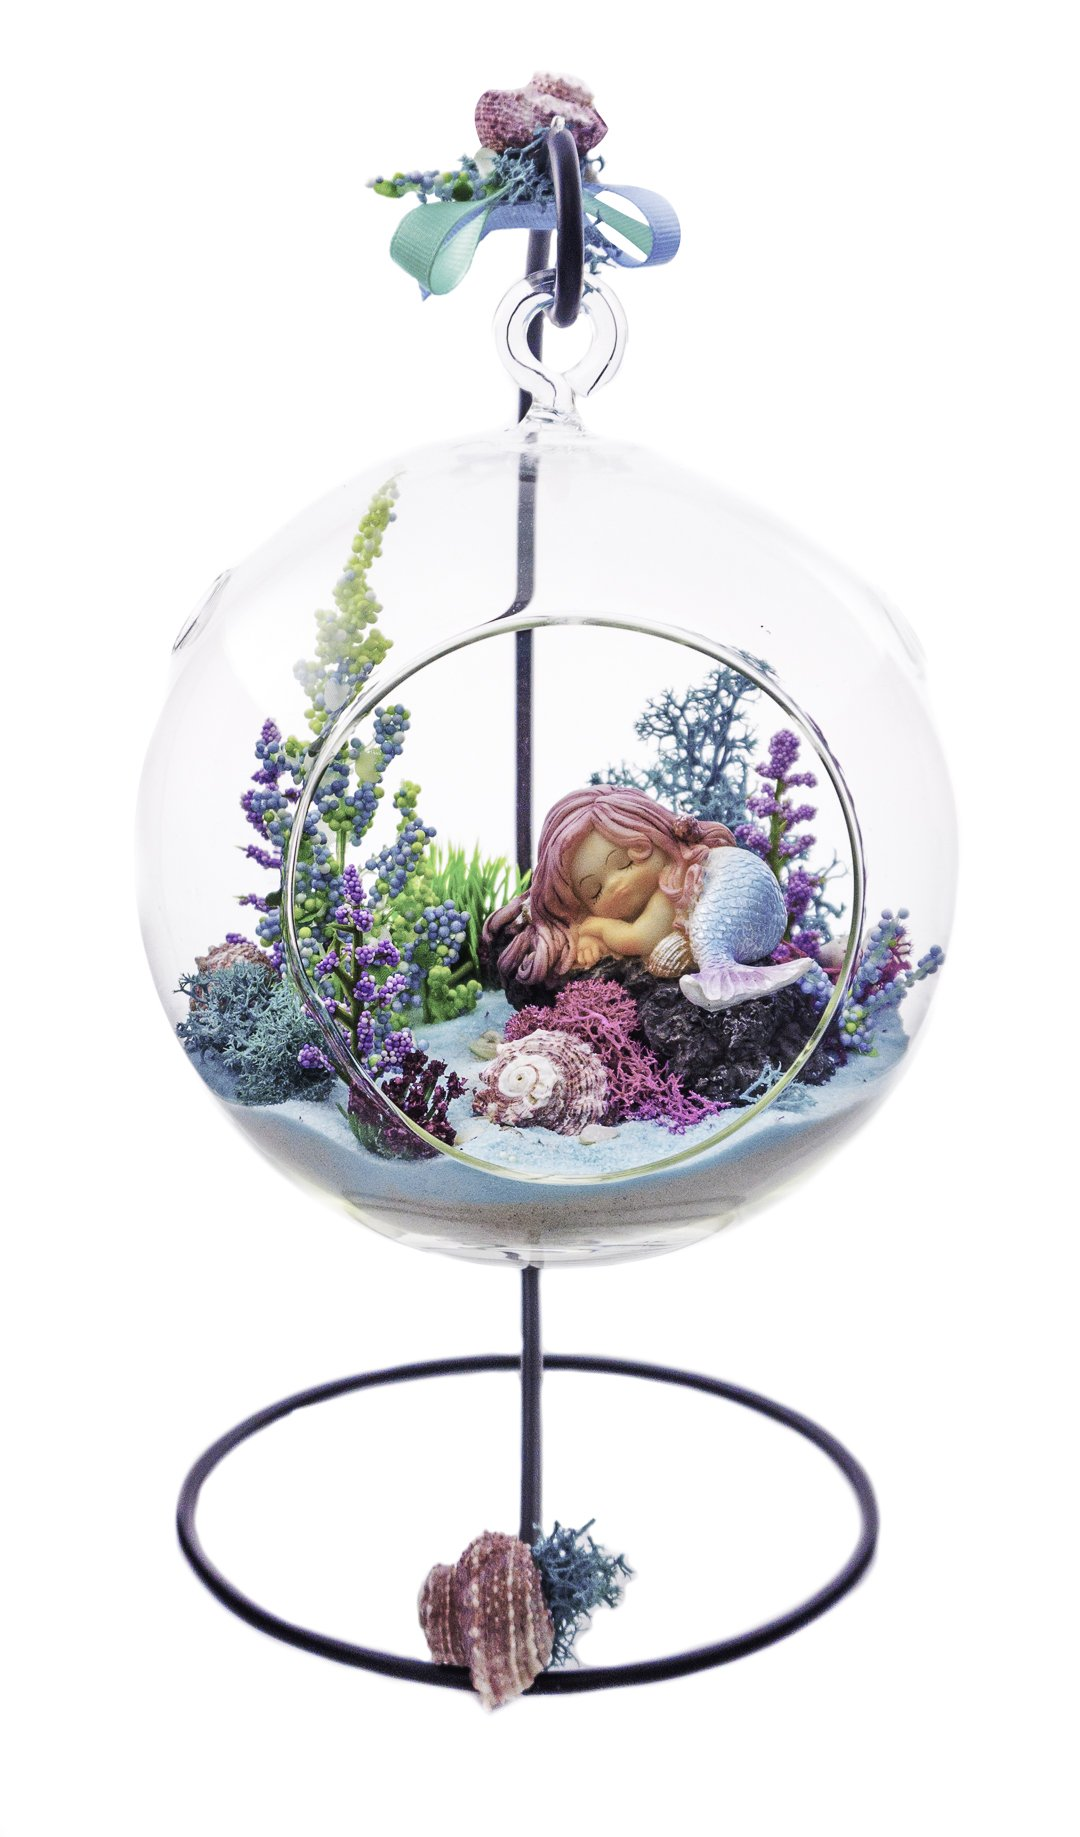 "Terrarium Kit | Rockin' Mermaid | Mermaid Series | Complete Terrarium Gift Set with Stand | 6"" Glass Globe Terrarium Container 